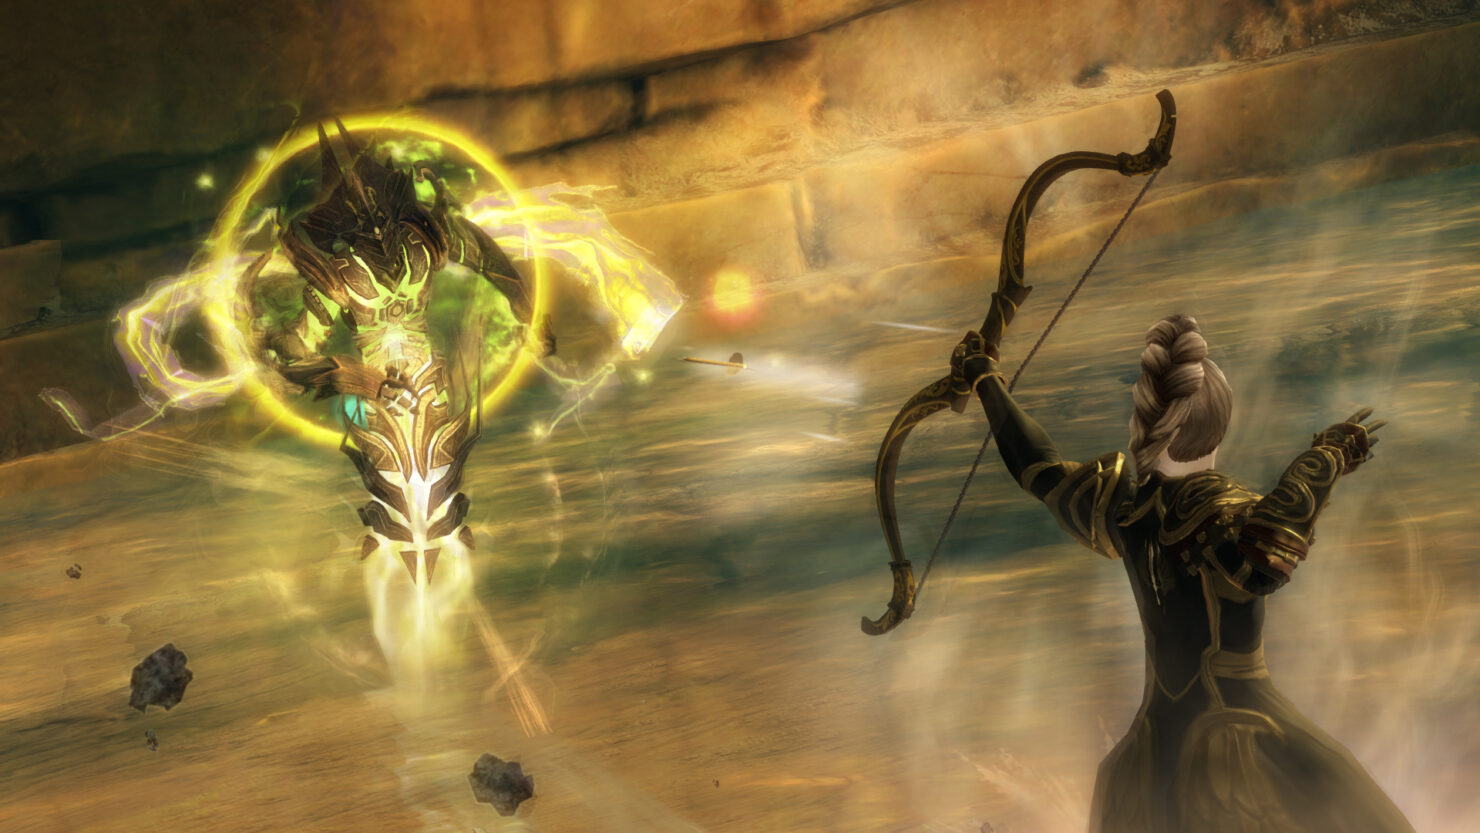 gw2_hot_08_2015_exalted_fight_2